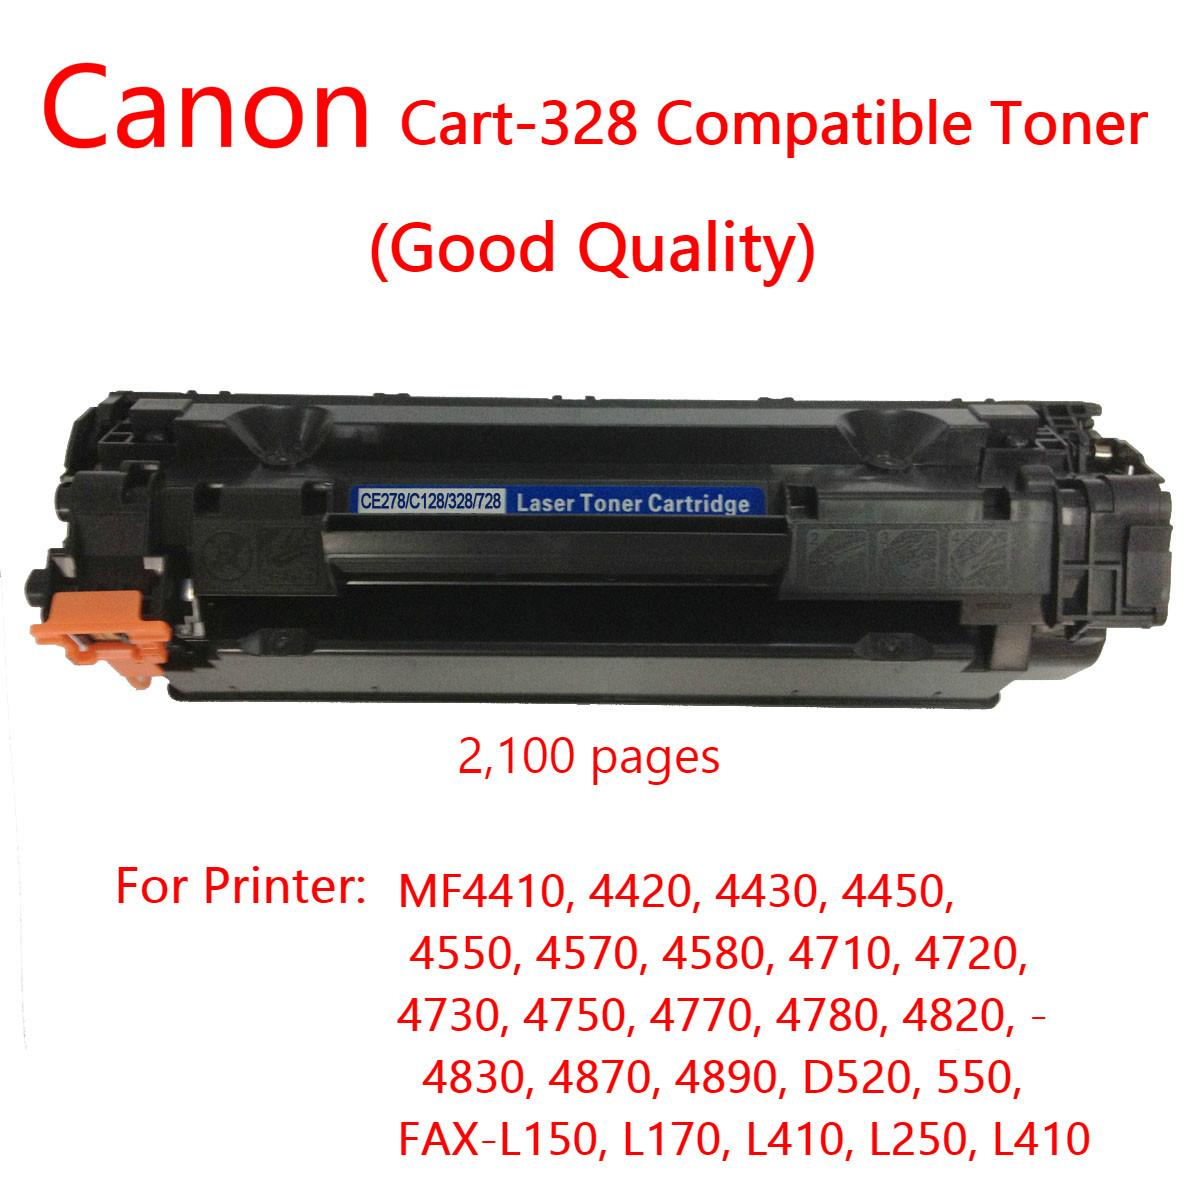 Buy Sell Cheapest Canon Ef16 Best Quality Product Deals Ink Cartridge Pgi 750xl Black Cart 328 Crg Toner Compatible